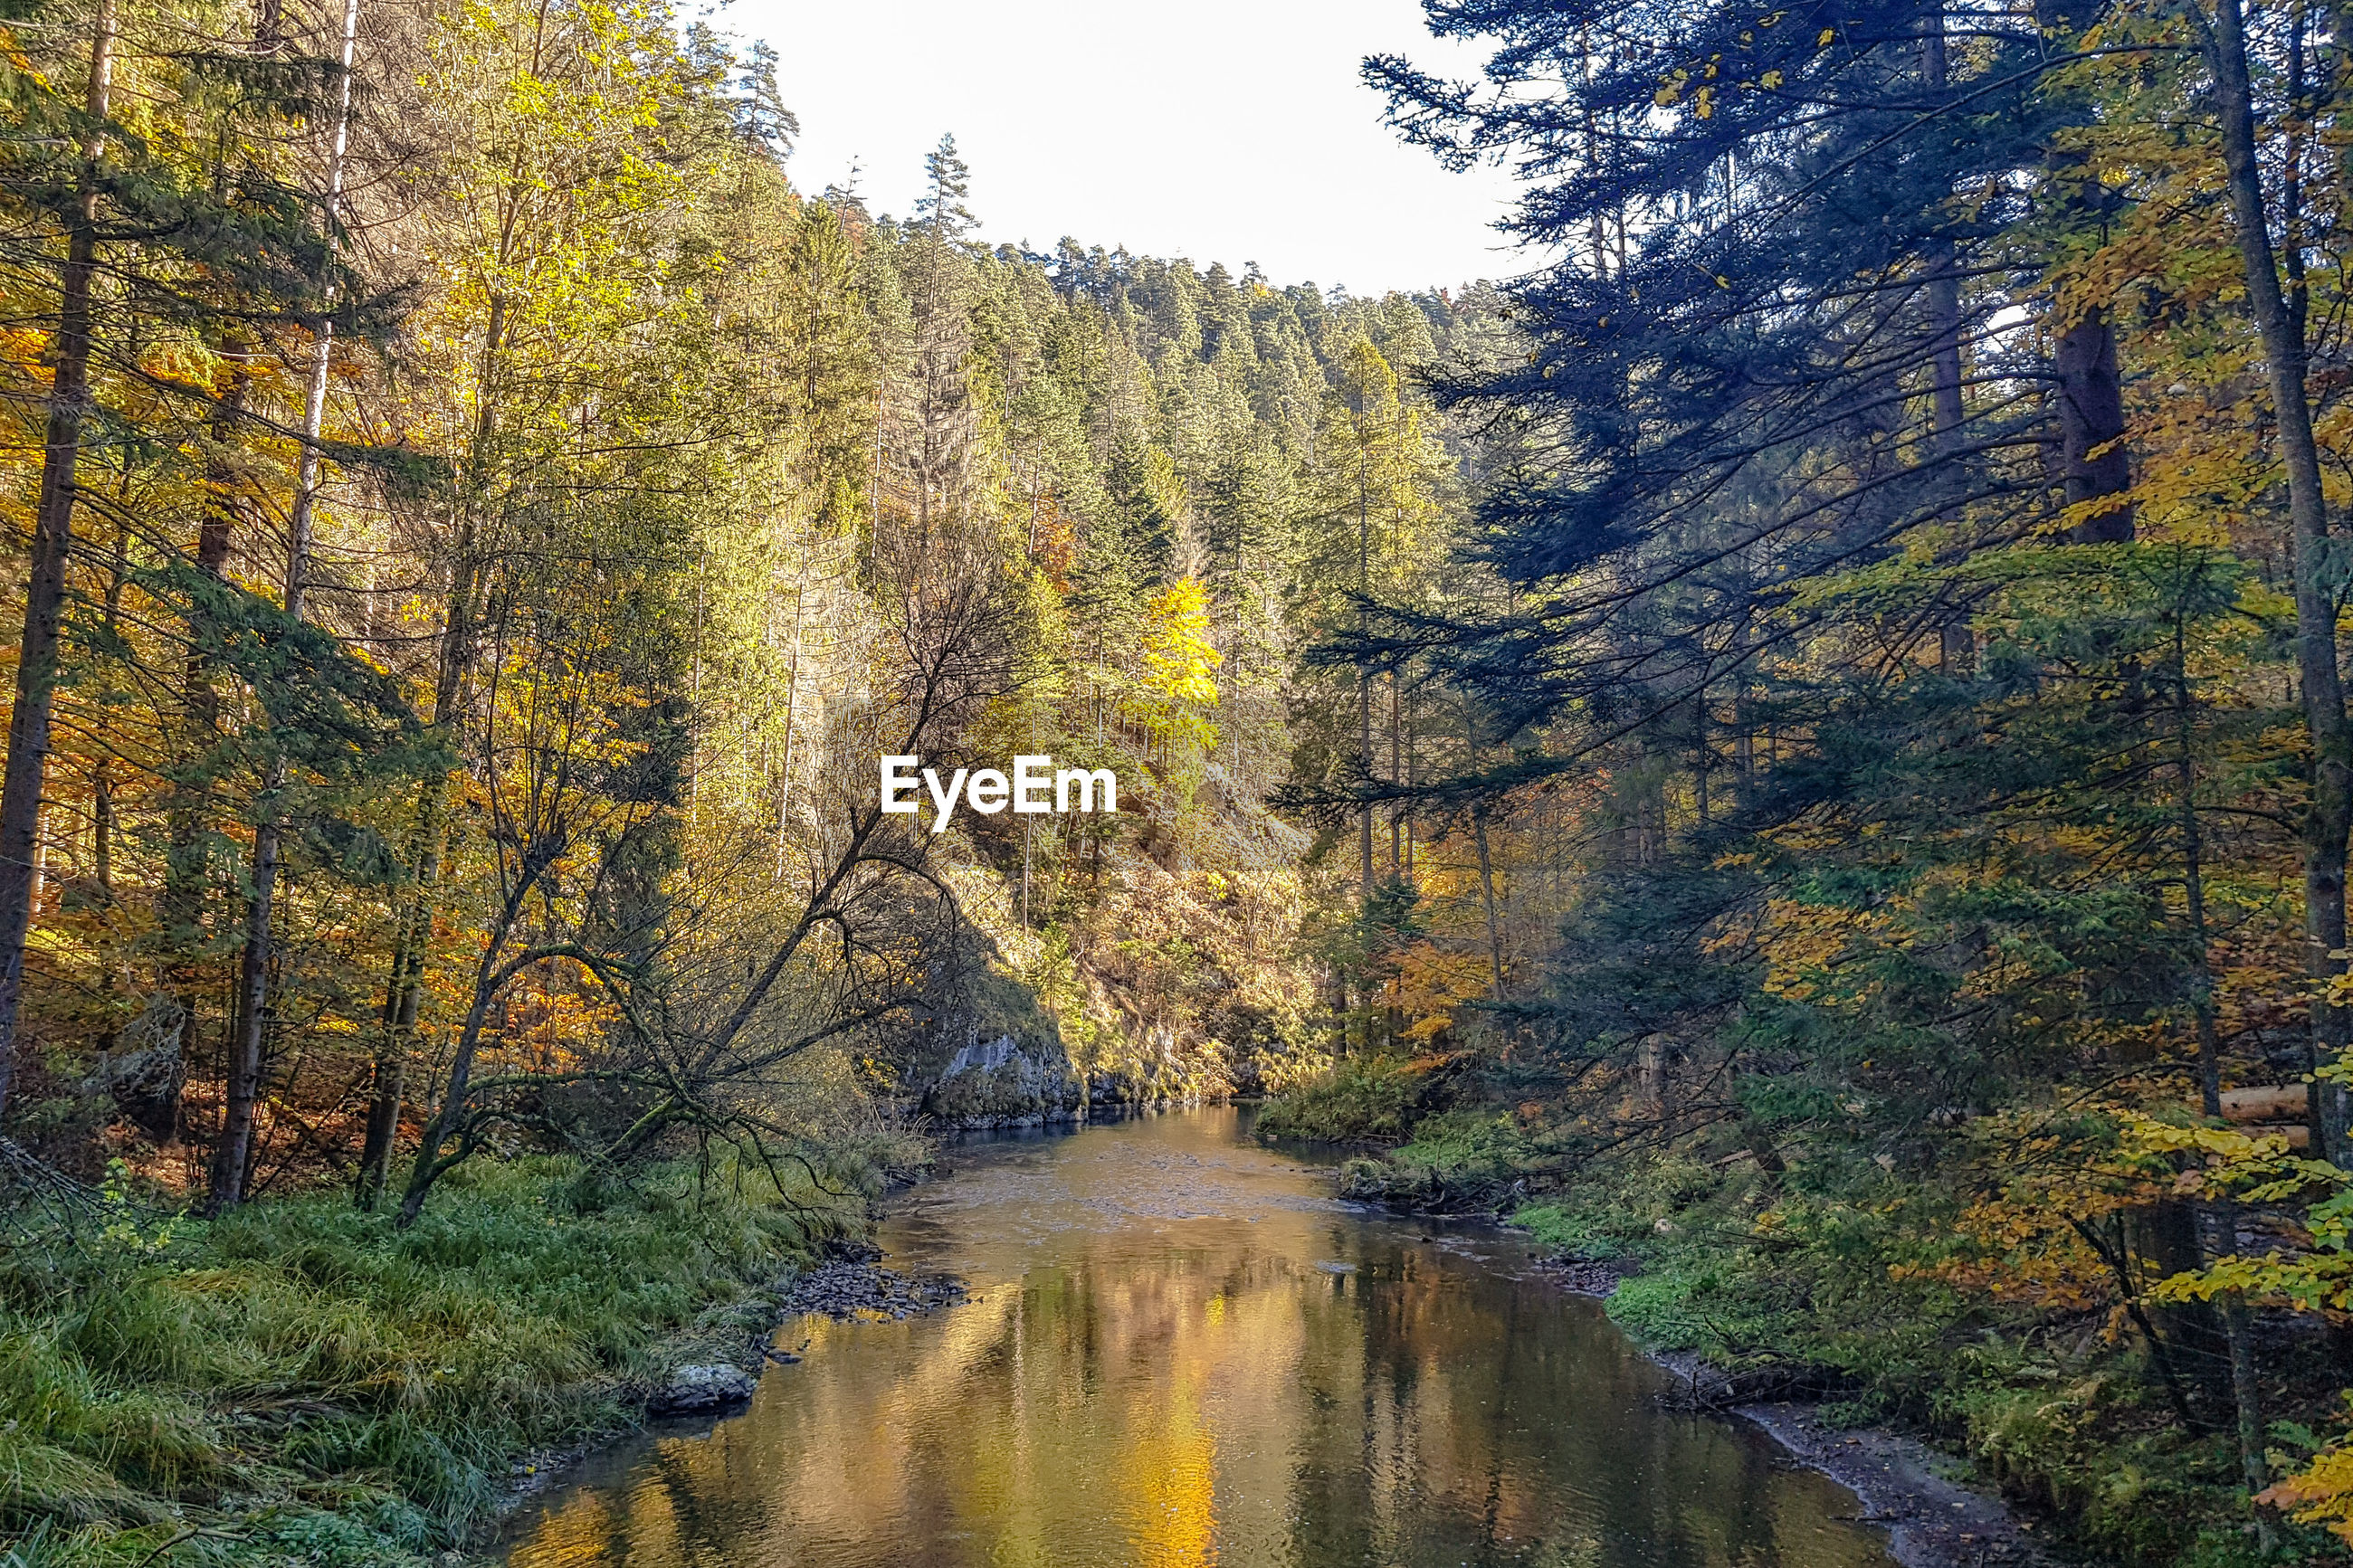 Plants growing by river stream in forest during autumn